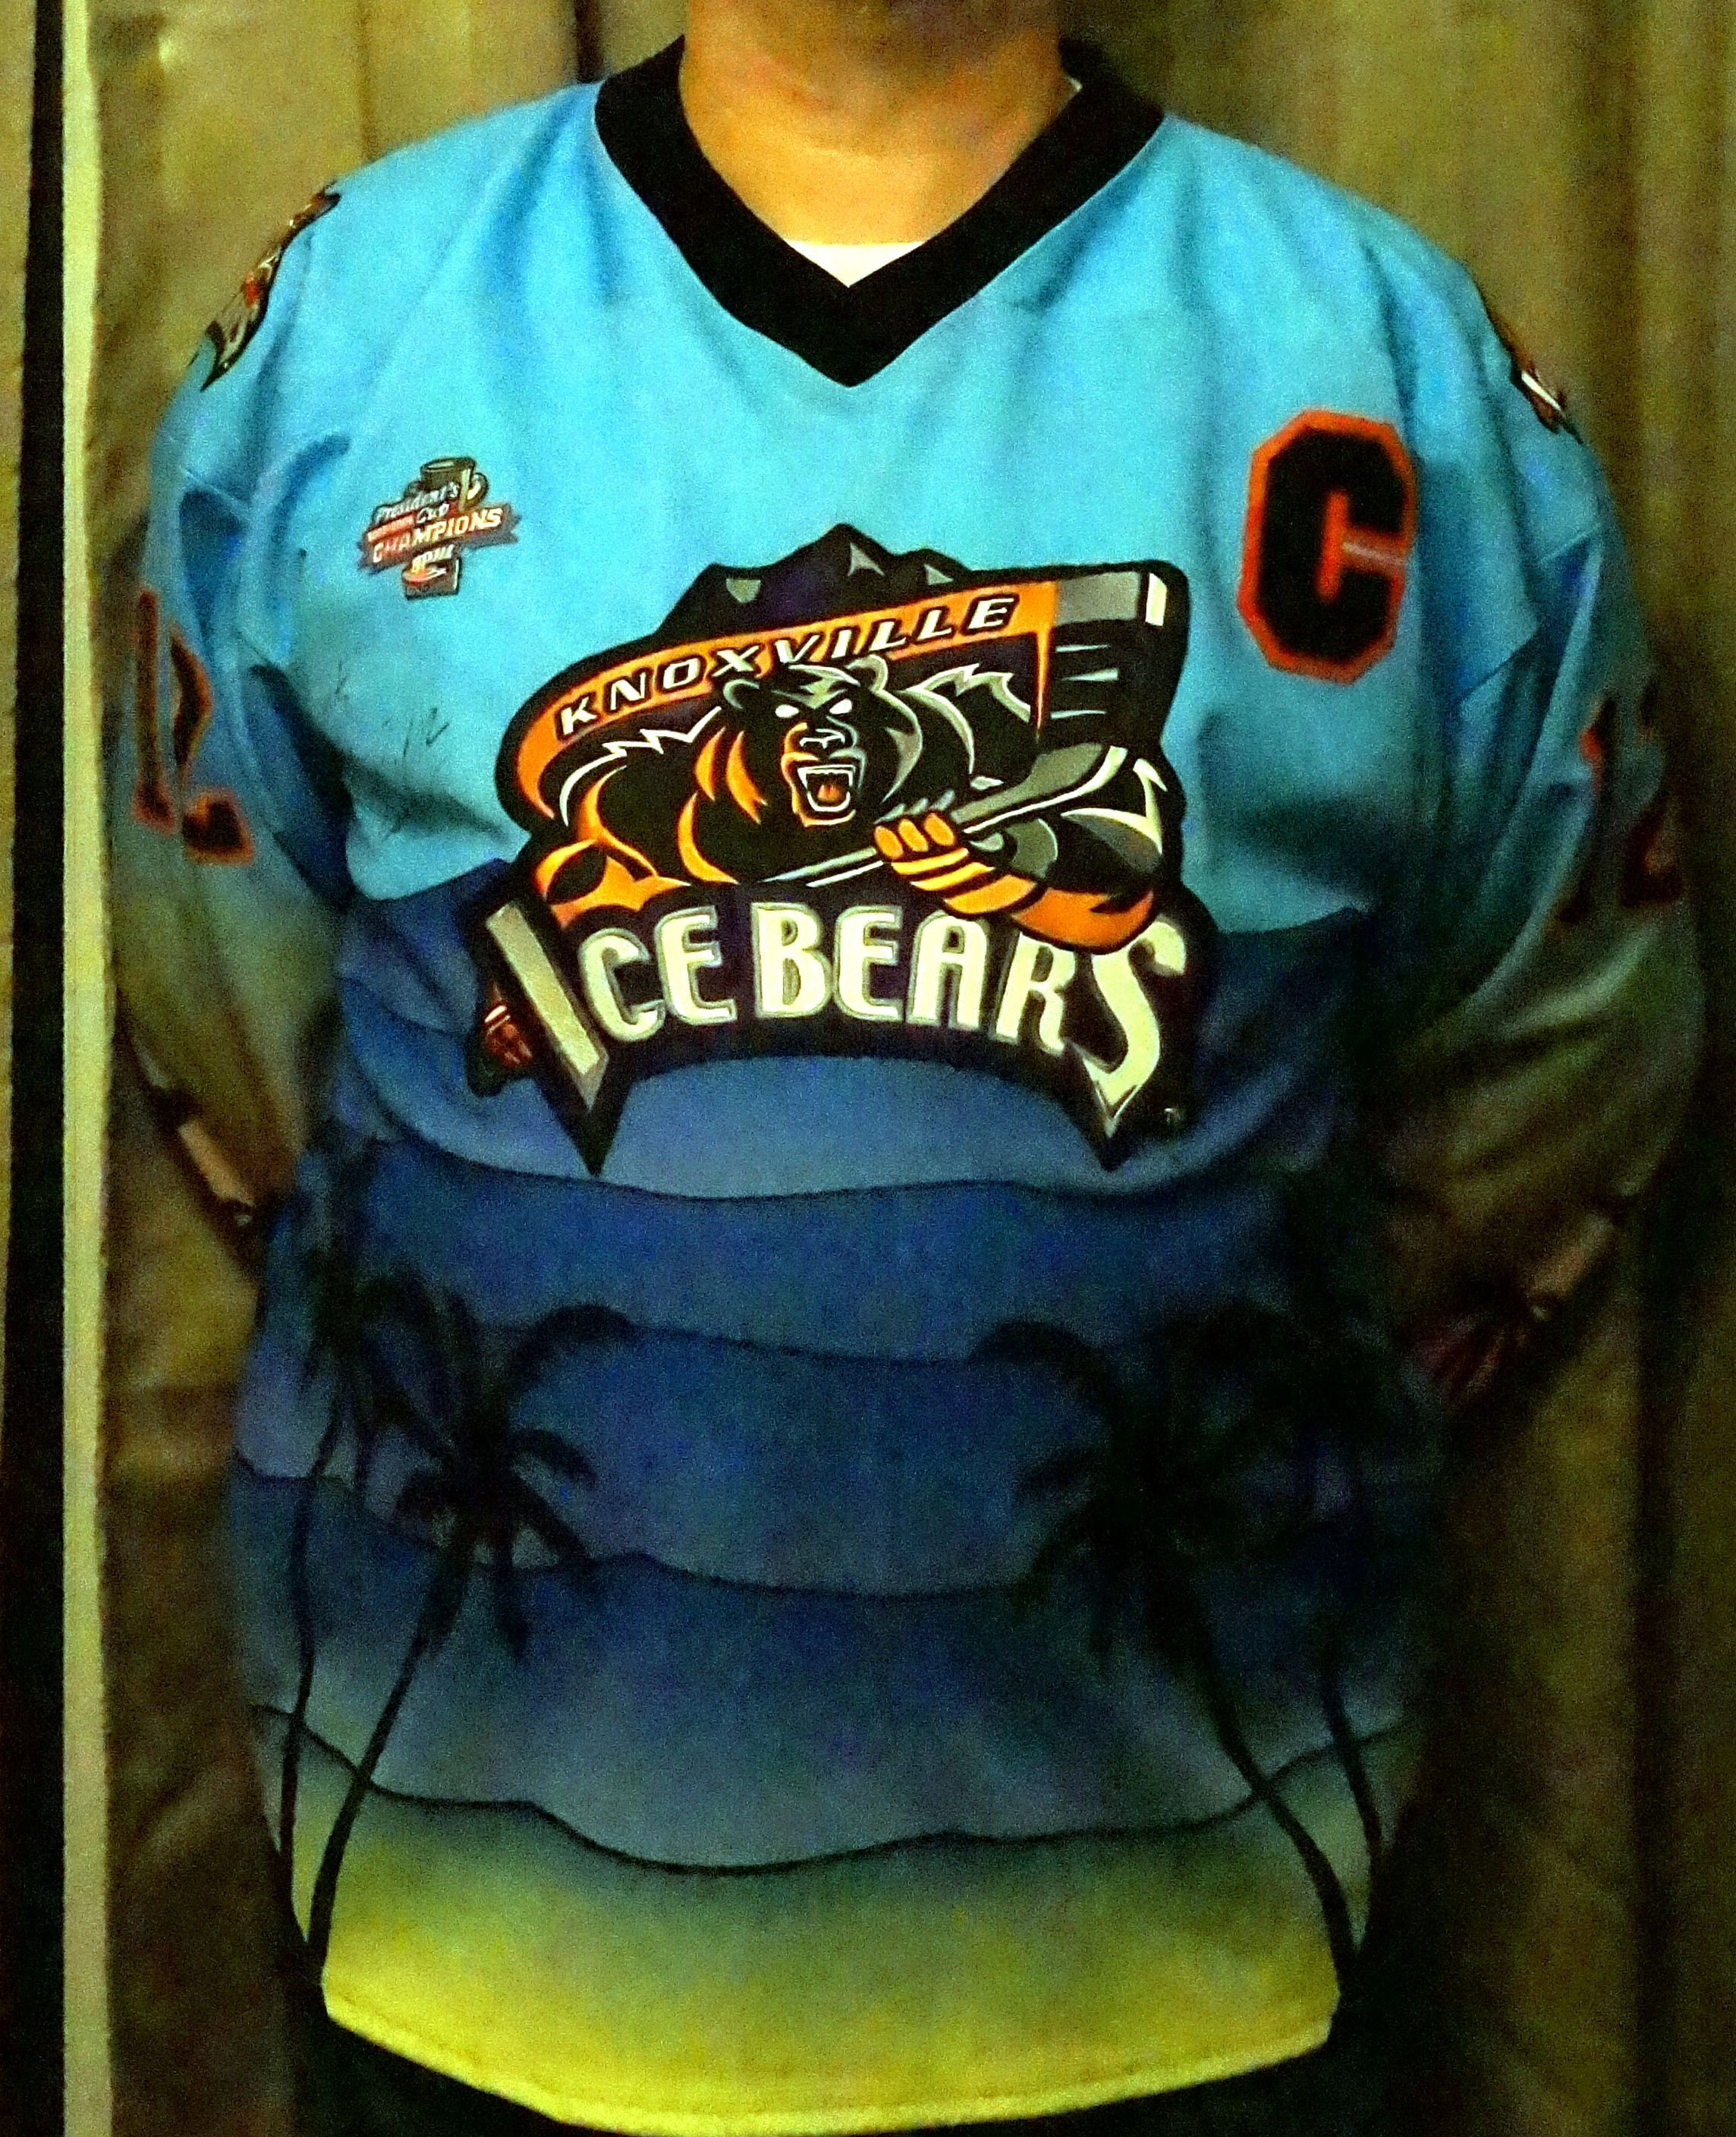 Knoxville Ice Bears hockey jersey - Google Search  94d8a8aaa94